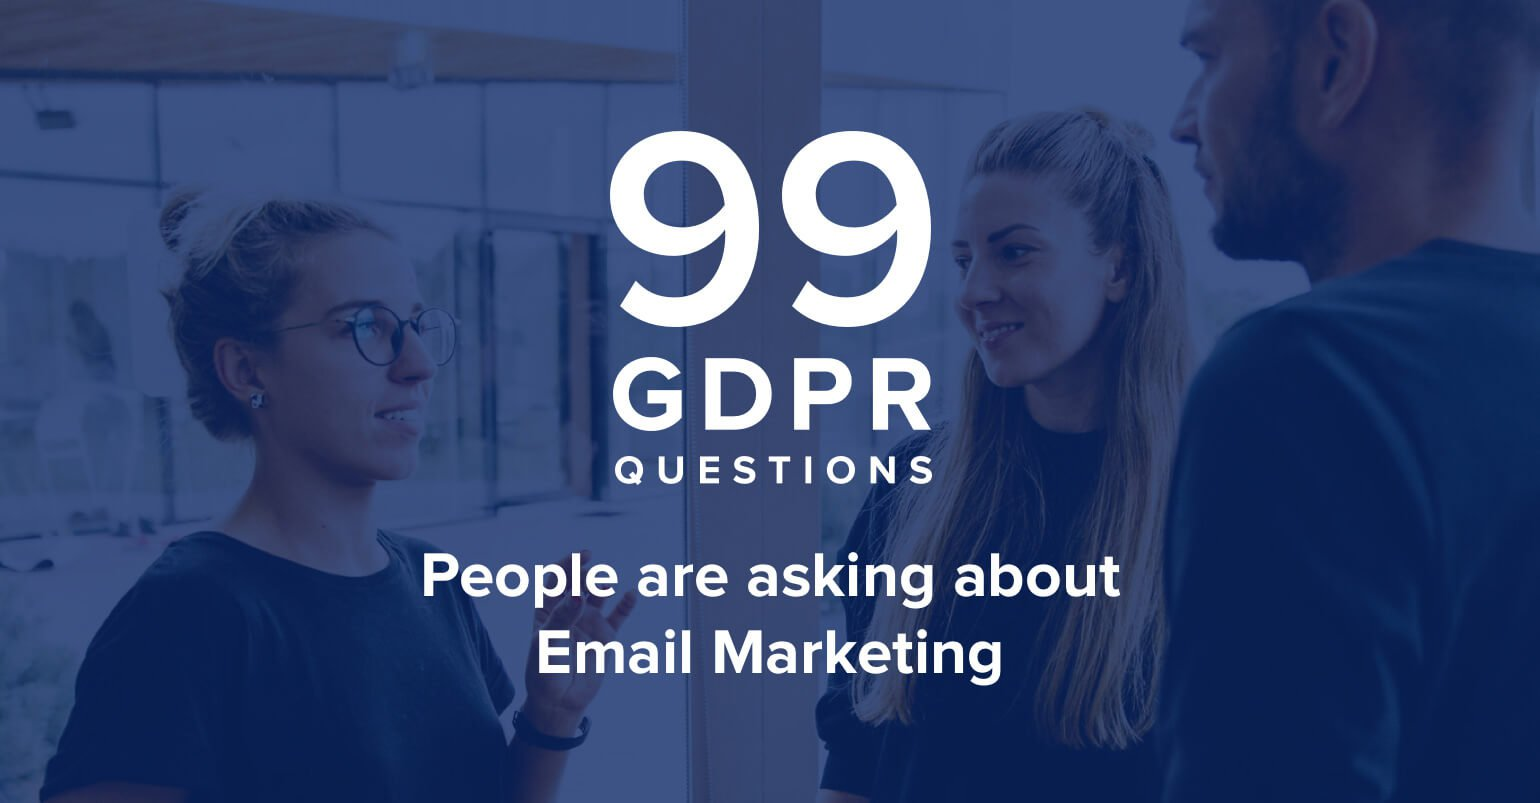 99 GDPR questions people ask about Email Marketing - MailerLite